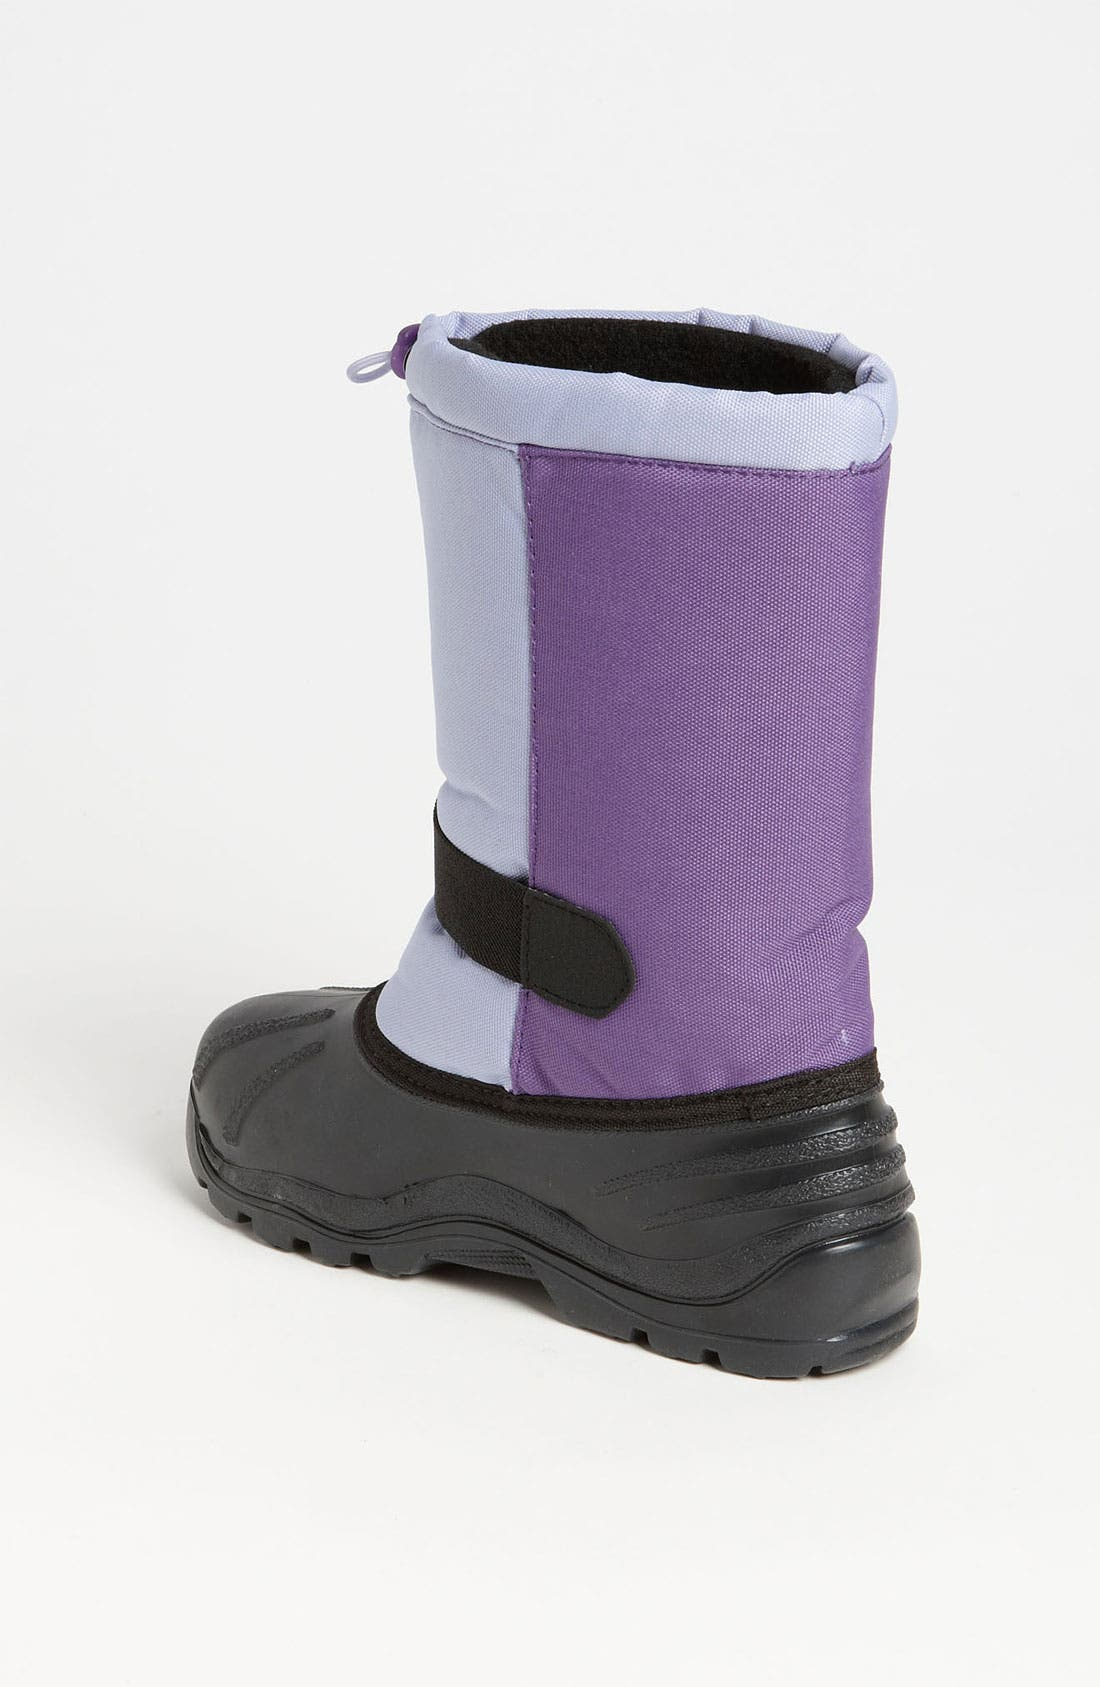 Alternate Image 2  - Kamik 'Fireball' Snow Boot (Toddler, Little Kid & Big Kid)(Special Purchase)